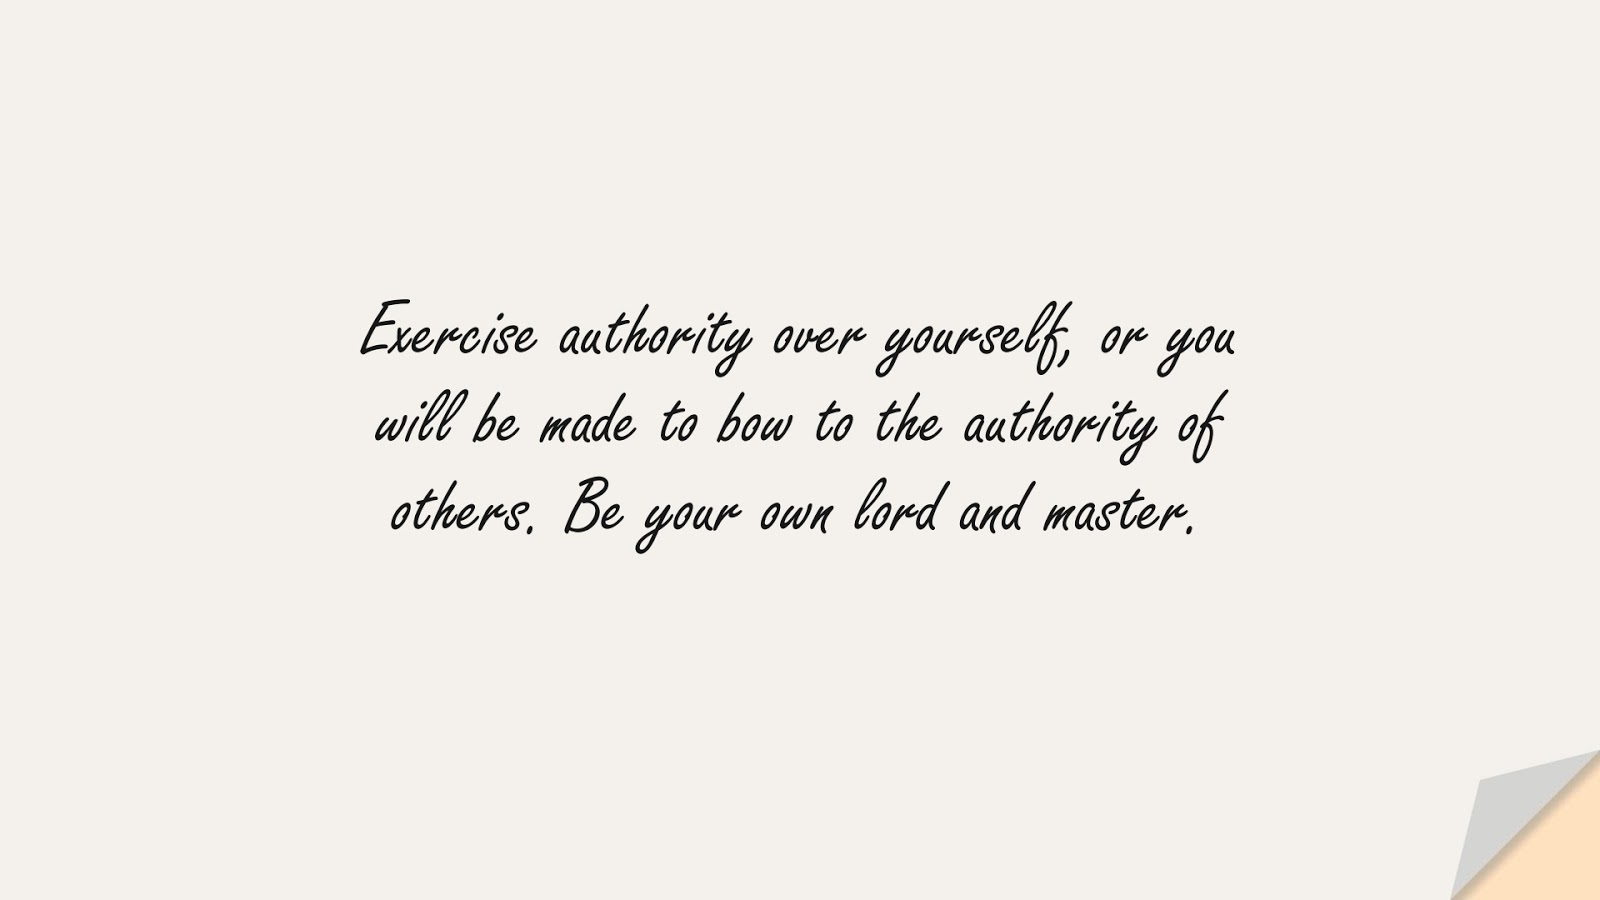 Exercise authority over yourself, or you will be made to bow to the authority of others. Be your own lord and master.FALSE